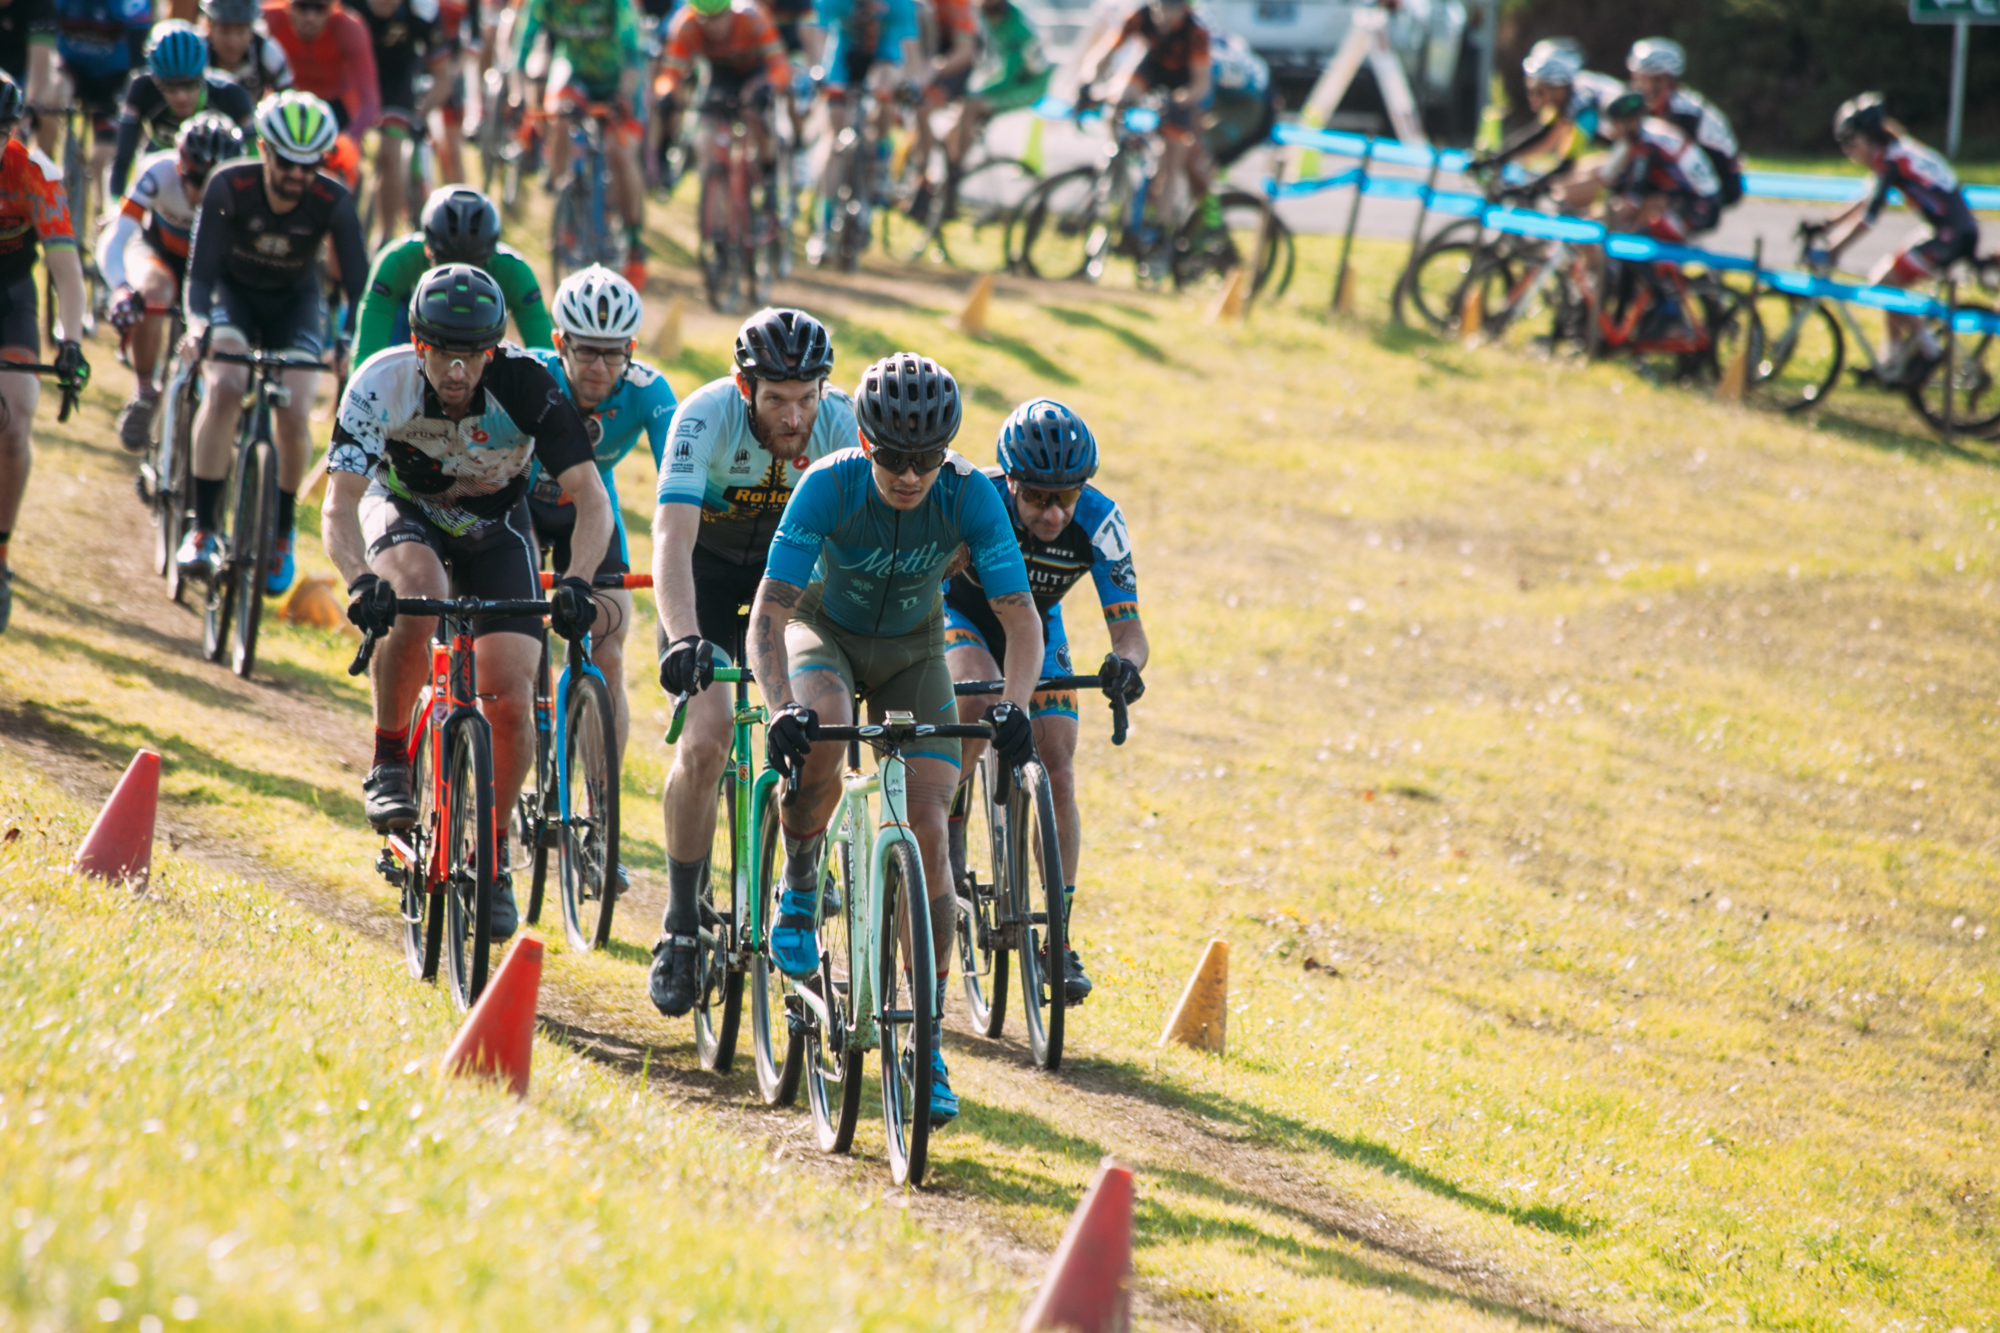 Cyclocross18_CCCX_RainierHS-24-mettlecycling.jpg